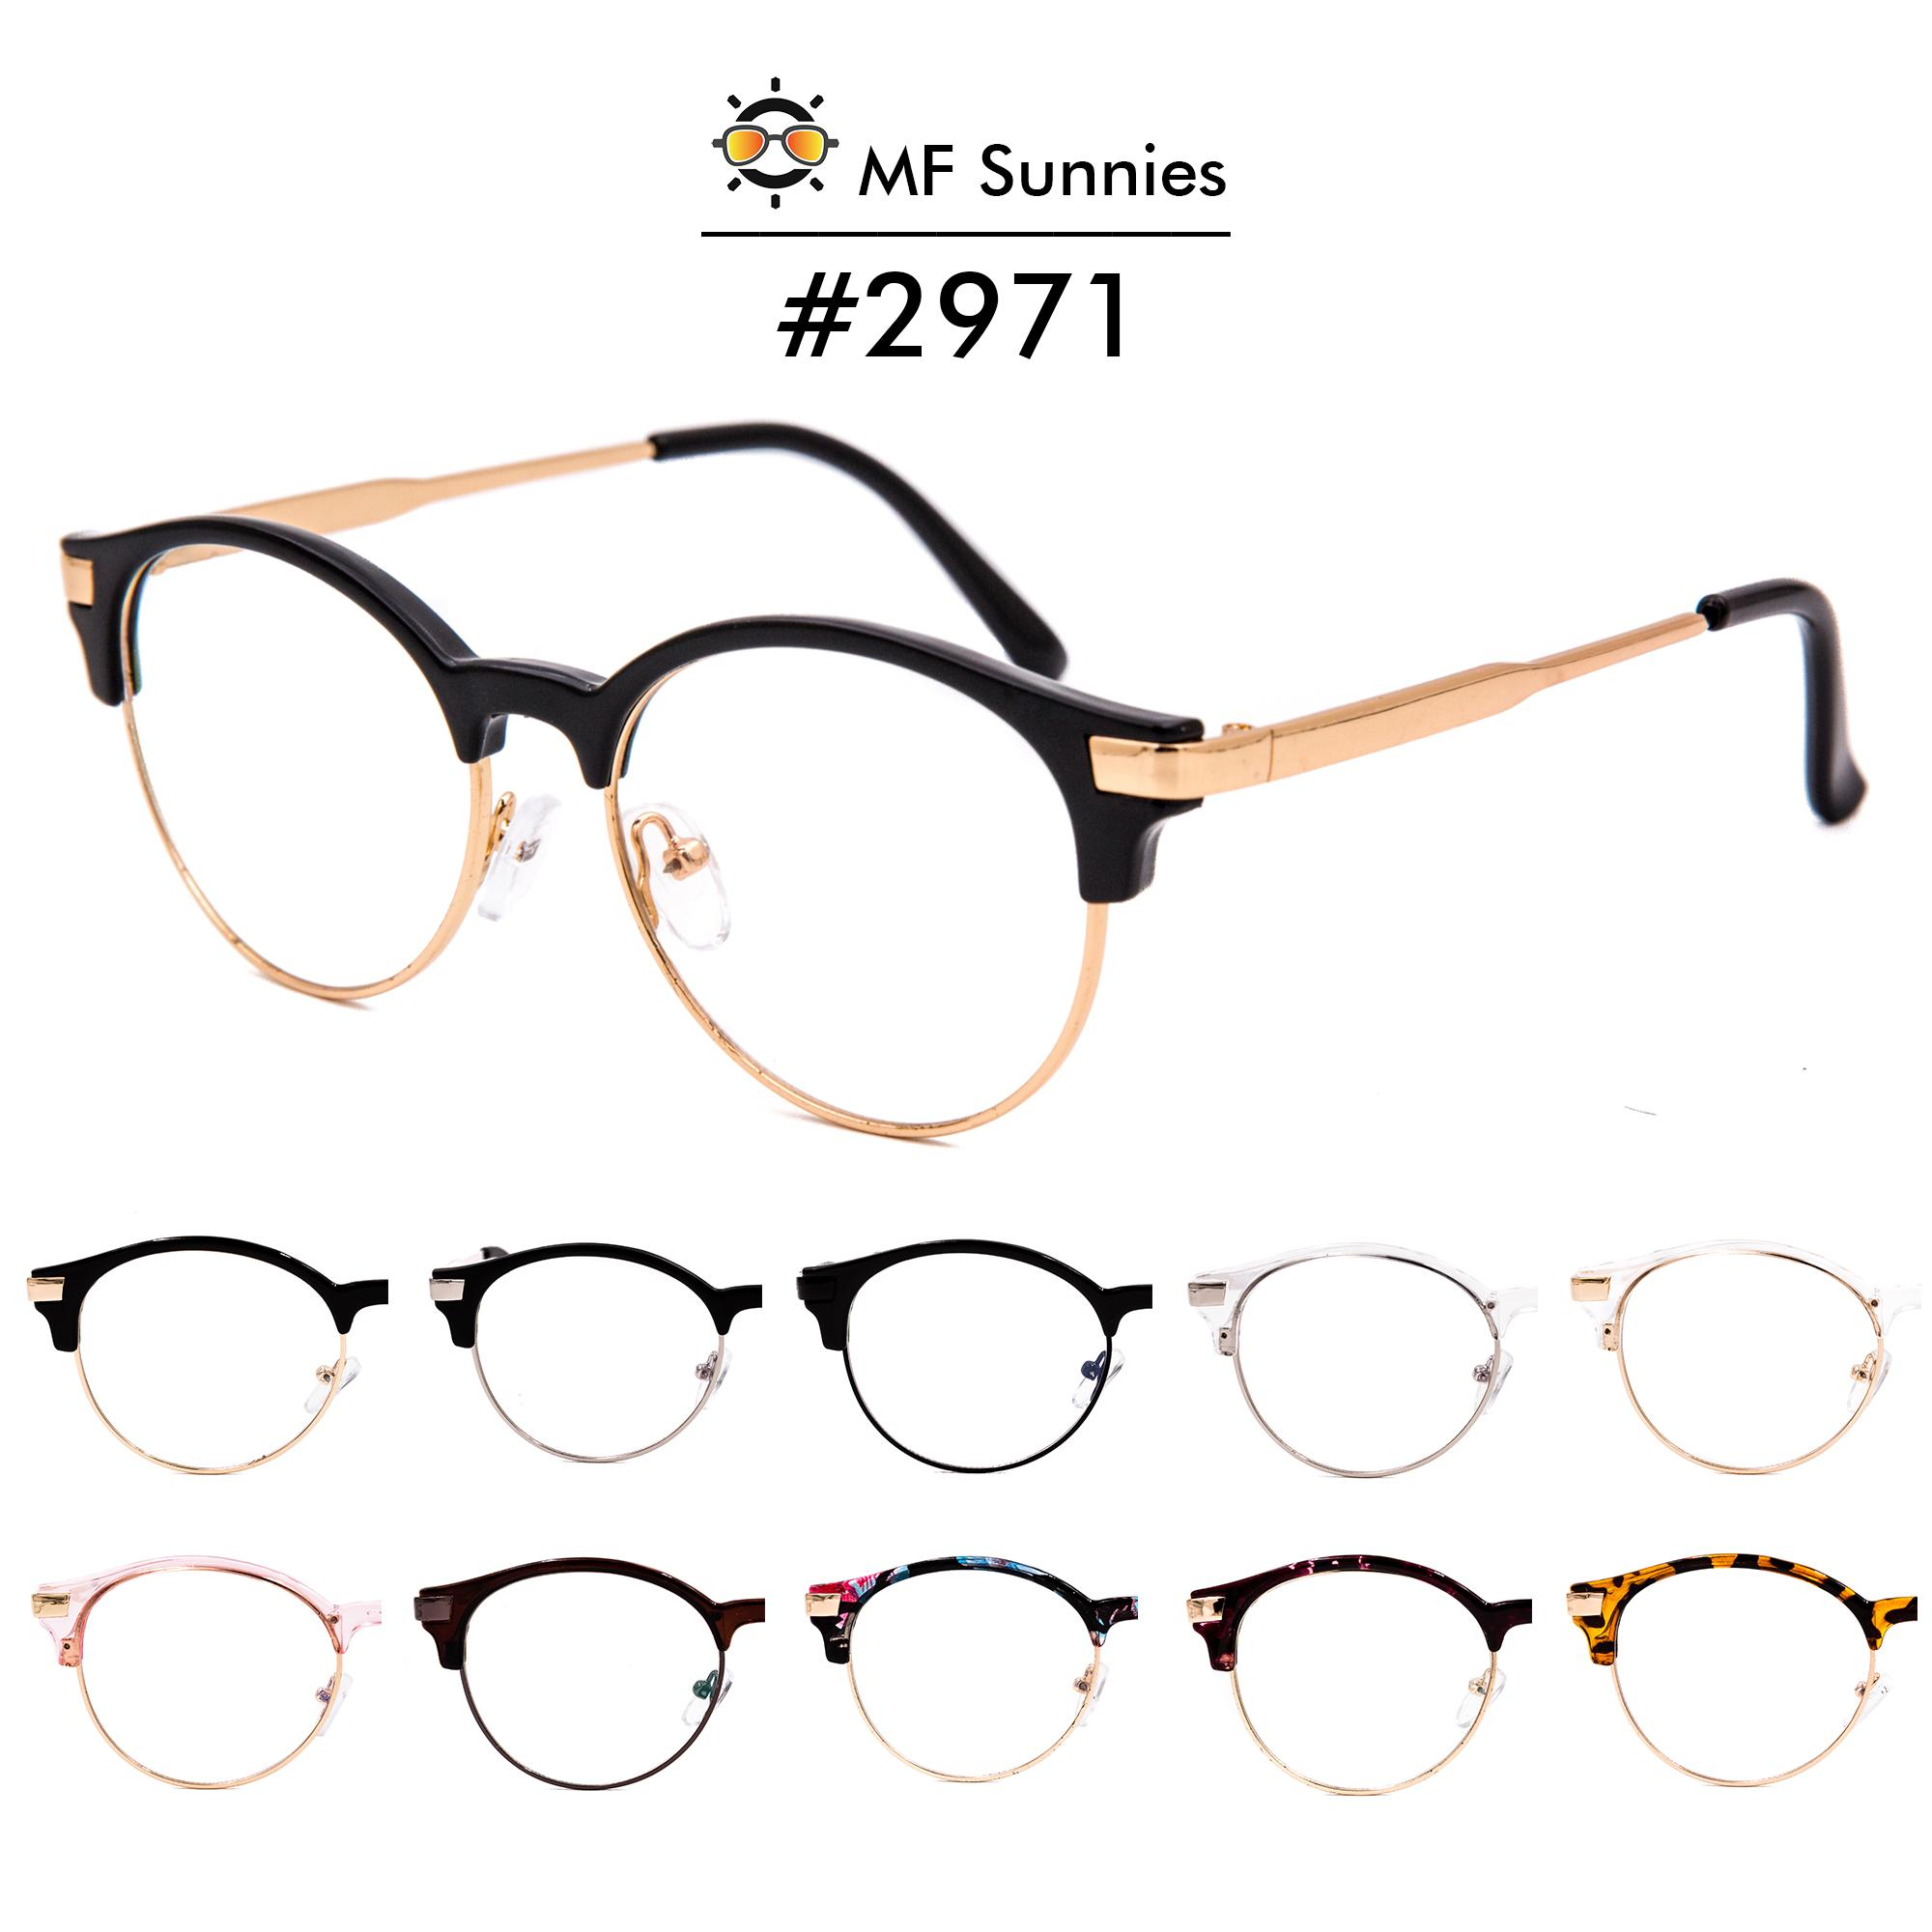 f40777cf9c74 MFSunnies Computer Anti-Radiation Blue light eyewear High quality acetate  optical frame Metal hinges